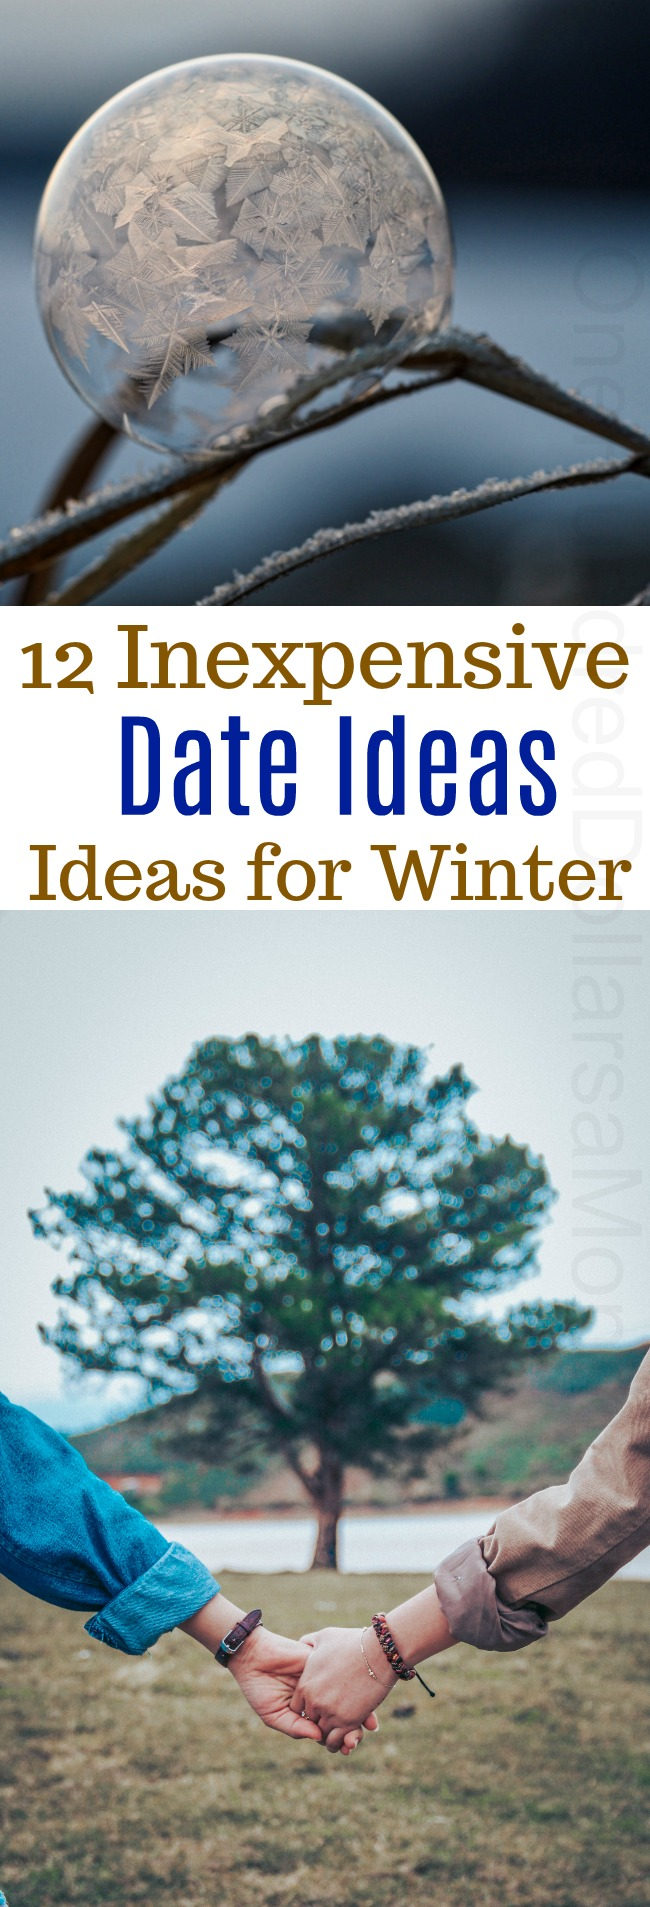 12 Inexpensive Date Ideas for Winter